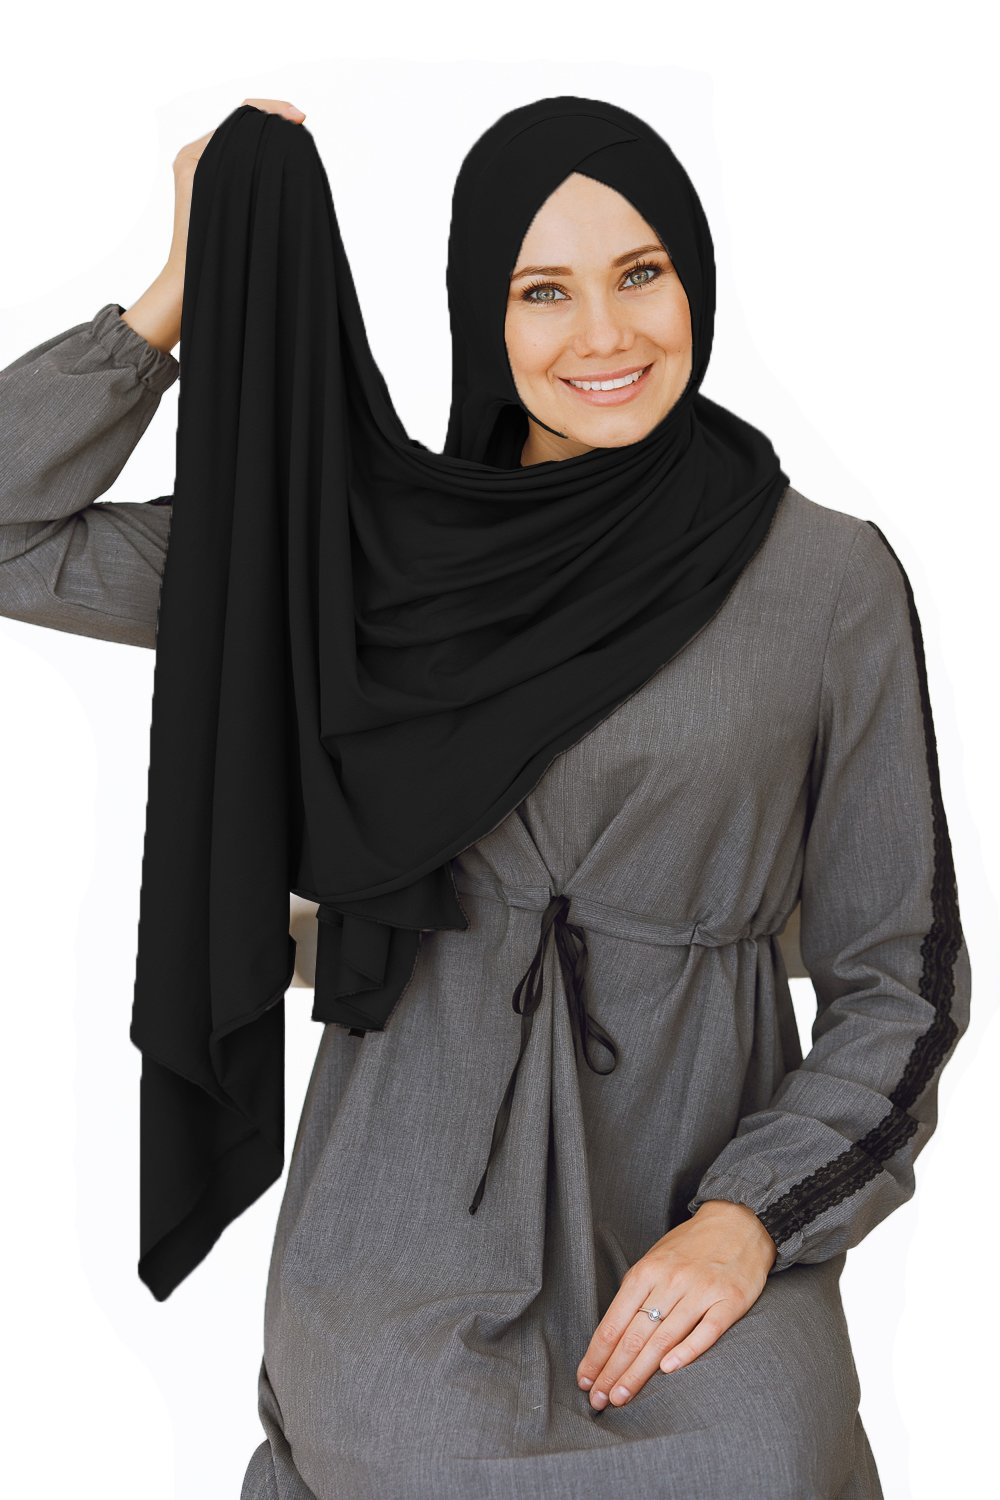 Cotton head scarf, instant black hijab, ready to wear muslim accessories for women (Black) by VeilWear (Image #5)